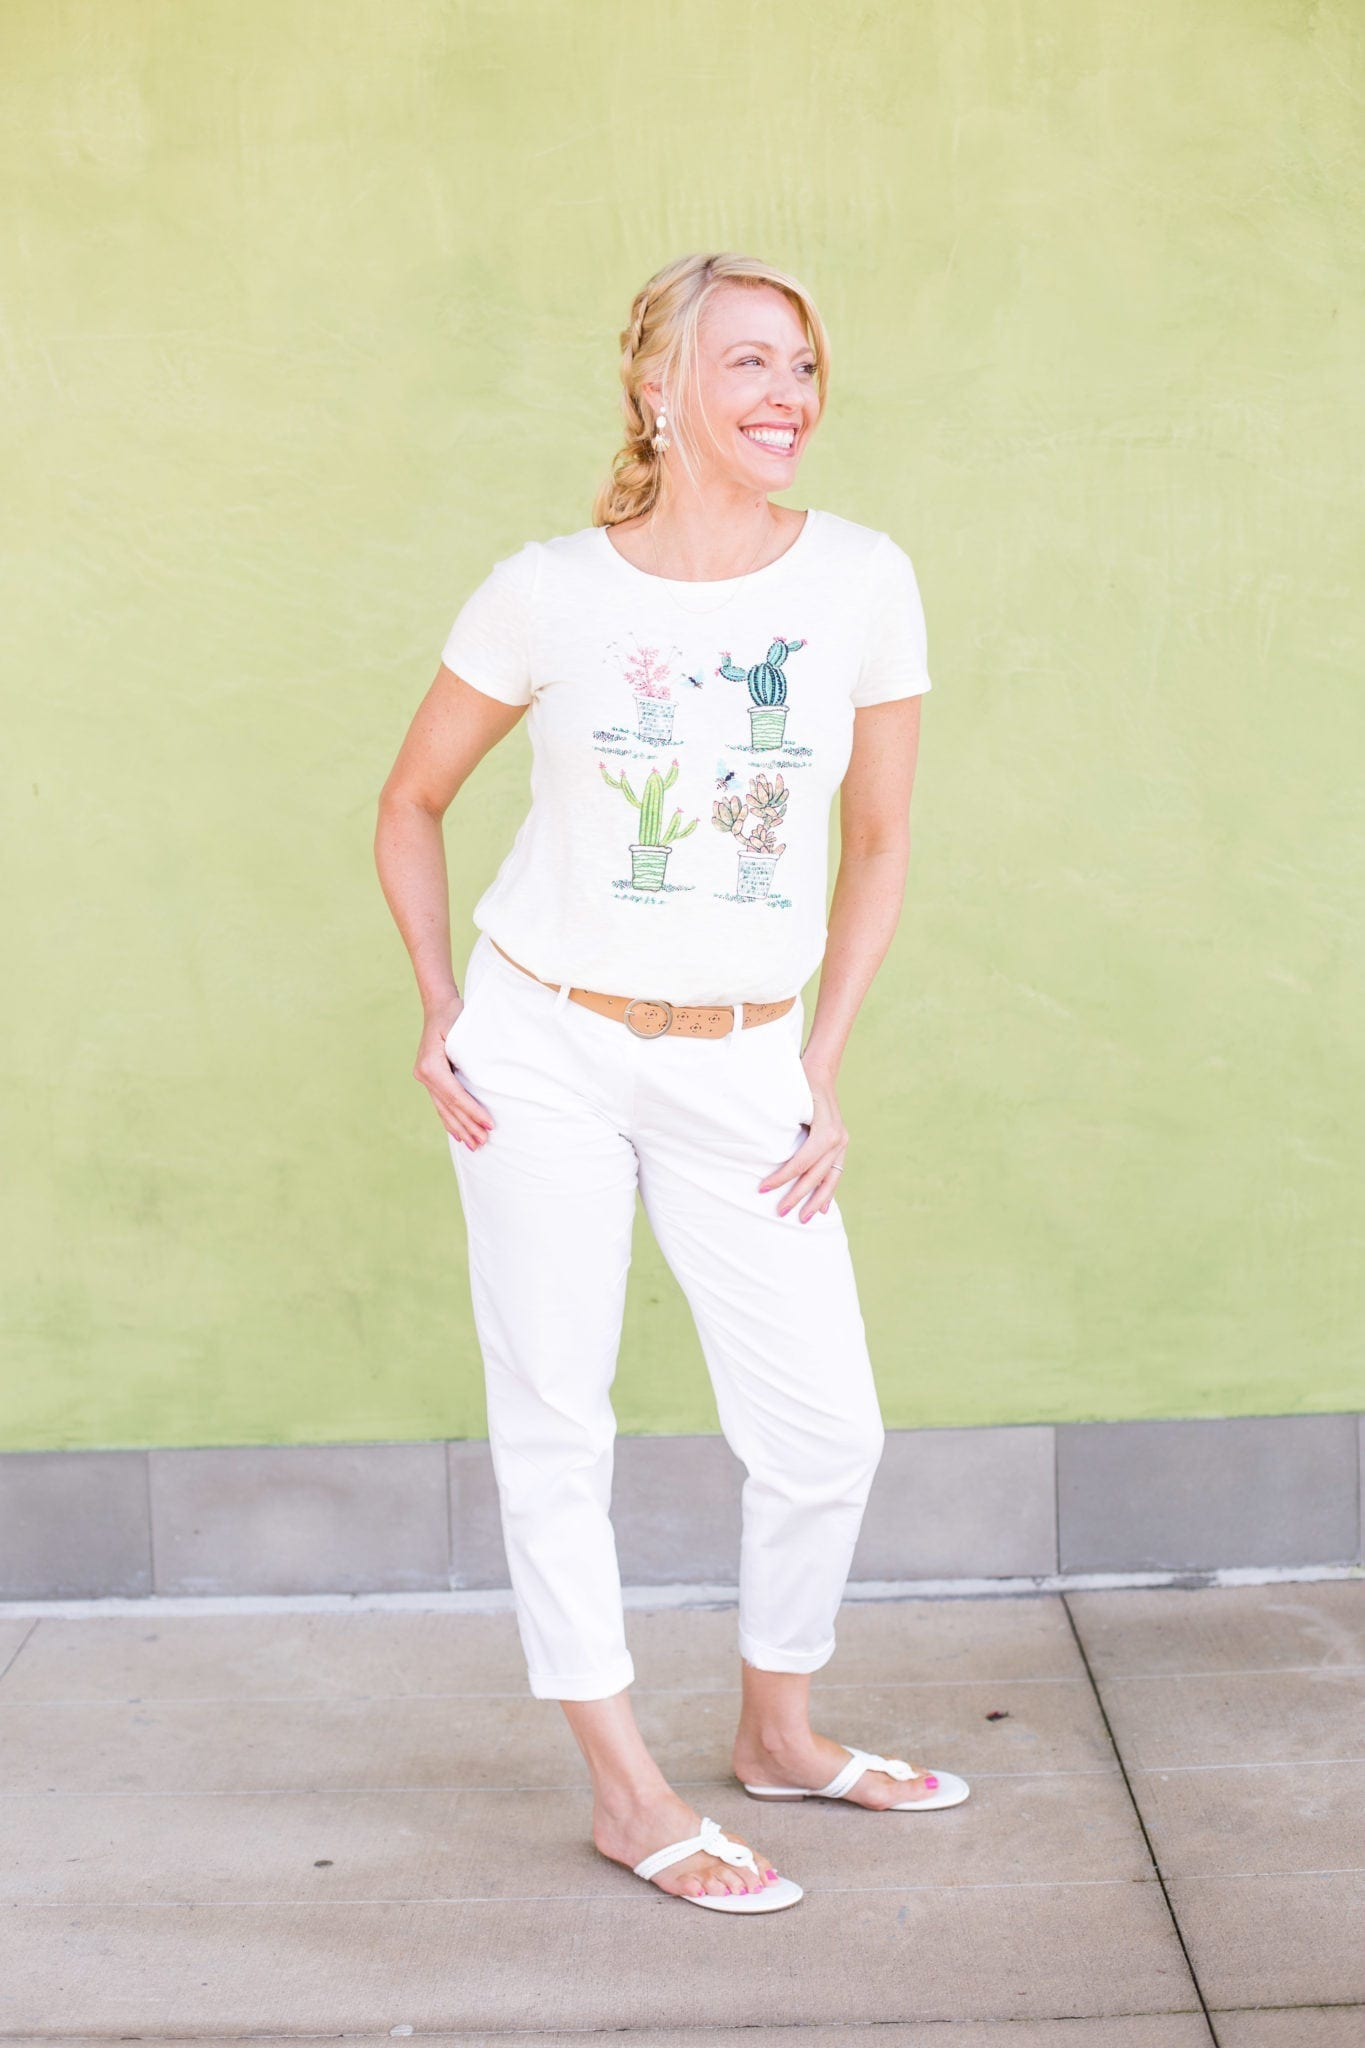 White sandals and beige belt with cactus t shirt.